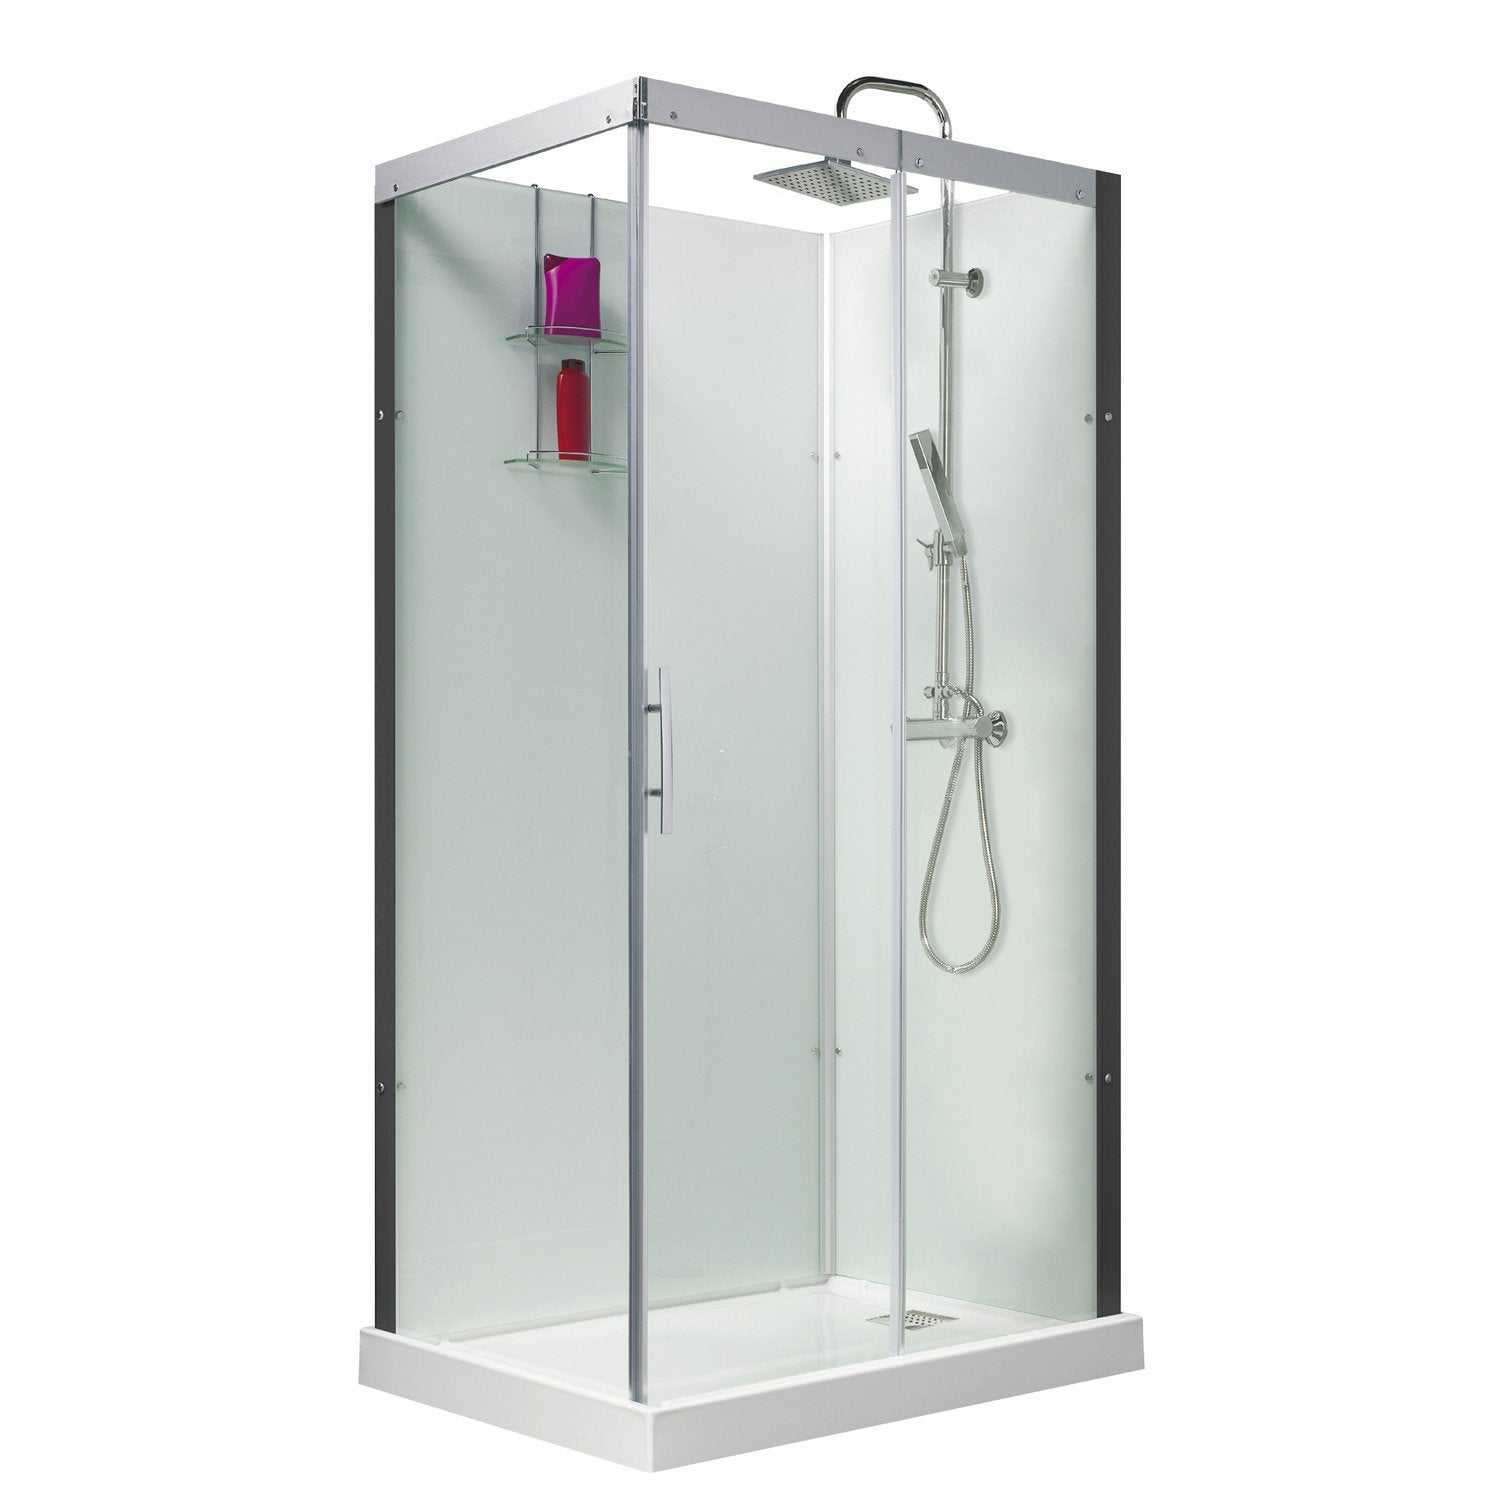 Cabine de douche rectangulaire 110x80 cm thalaglass 2 thermo leroy merlin - Destockage cabine de douche ...